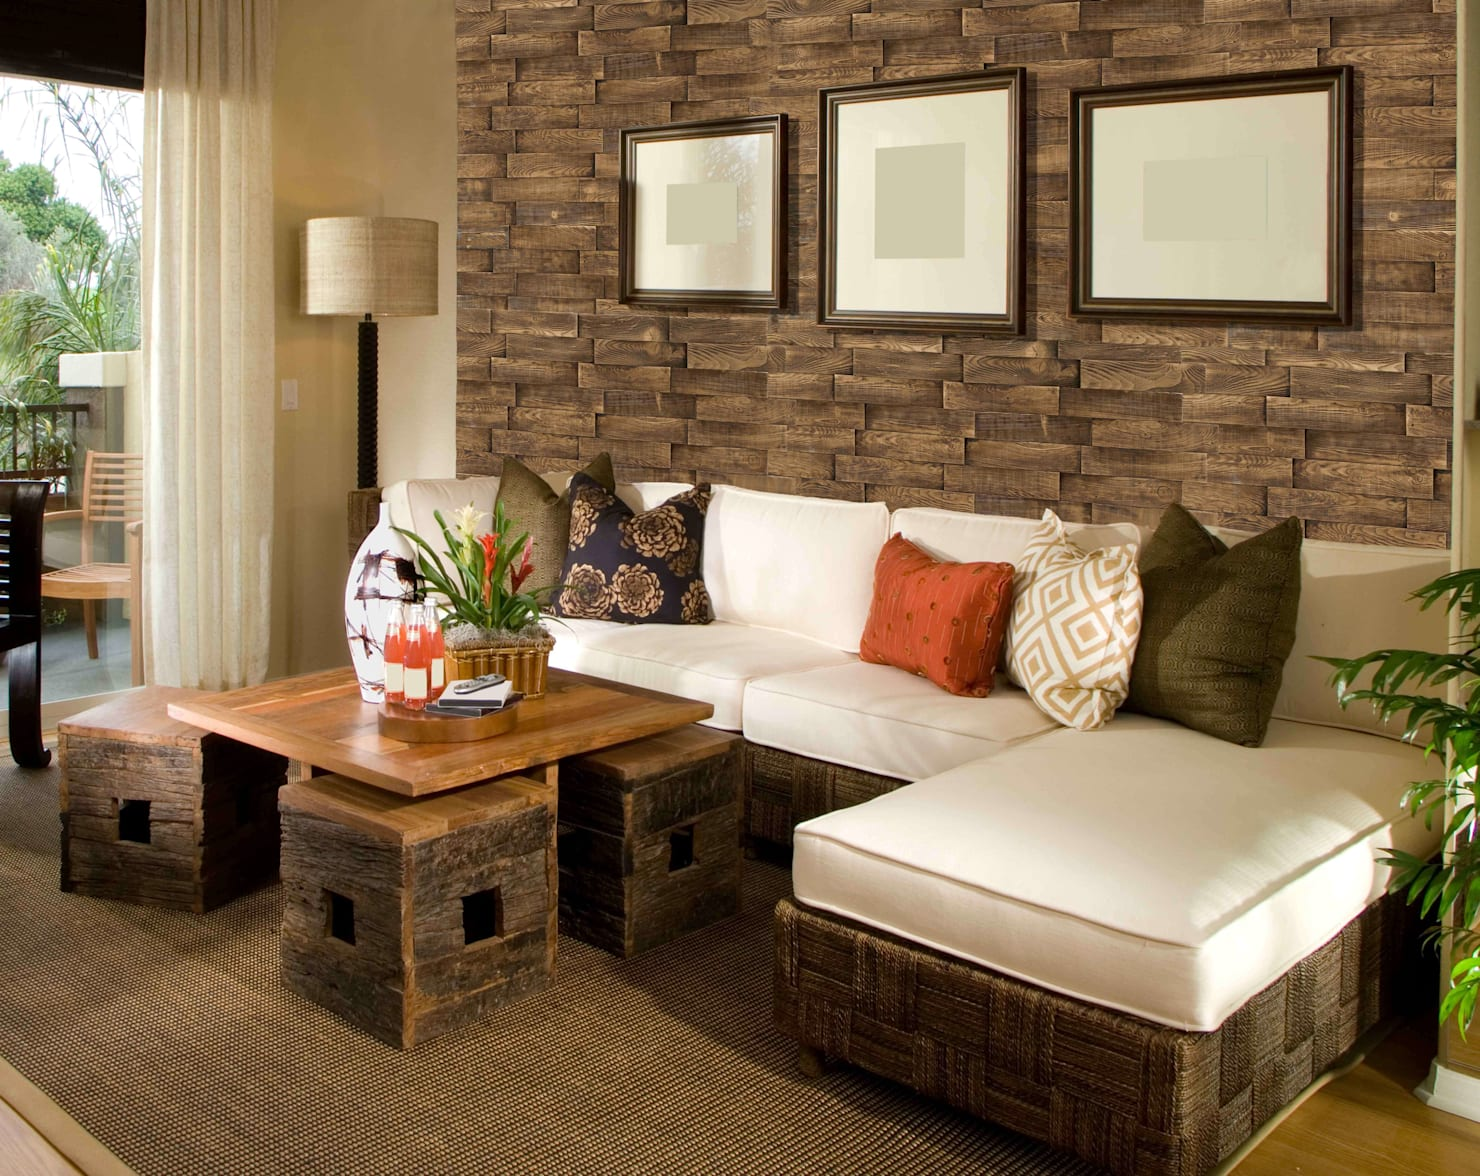 10 affordable ways to improve your home with wall coverings!